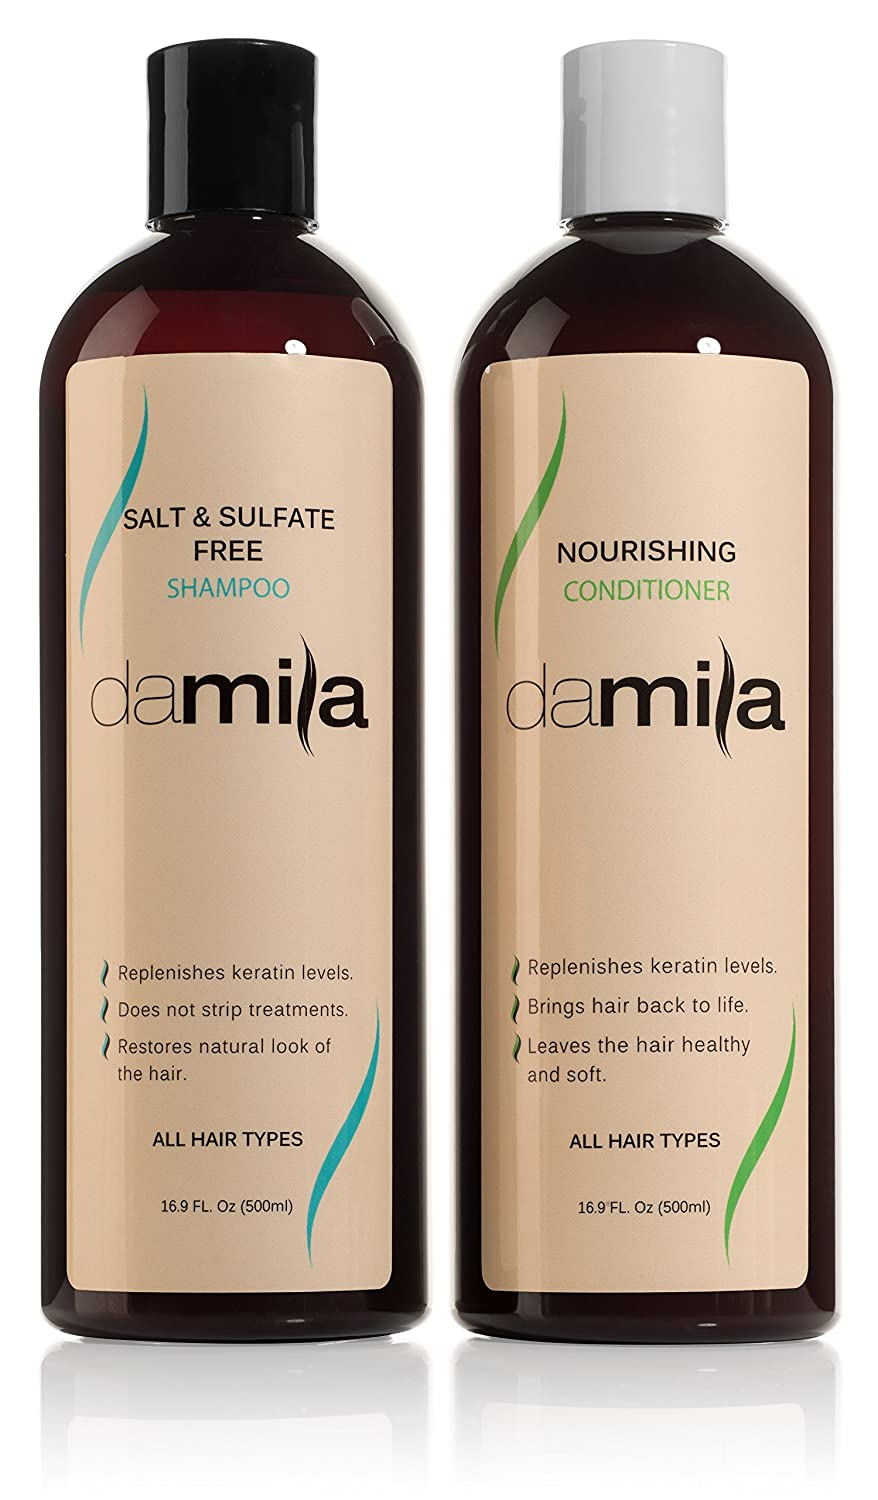 Salt & Sulfate Free Shampoo and Nourishing Conditioner - Keratin Complex. For Daily Use, Combo Set. Extends the Life of Keratin Treatment & Enhances Results and Restores Hair - 16.9 Oz / 500 ml